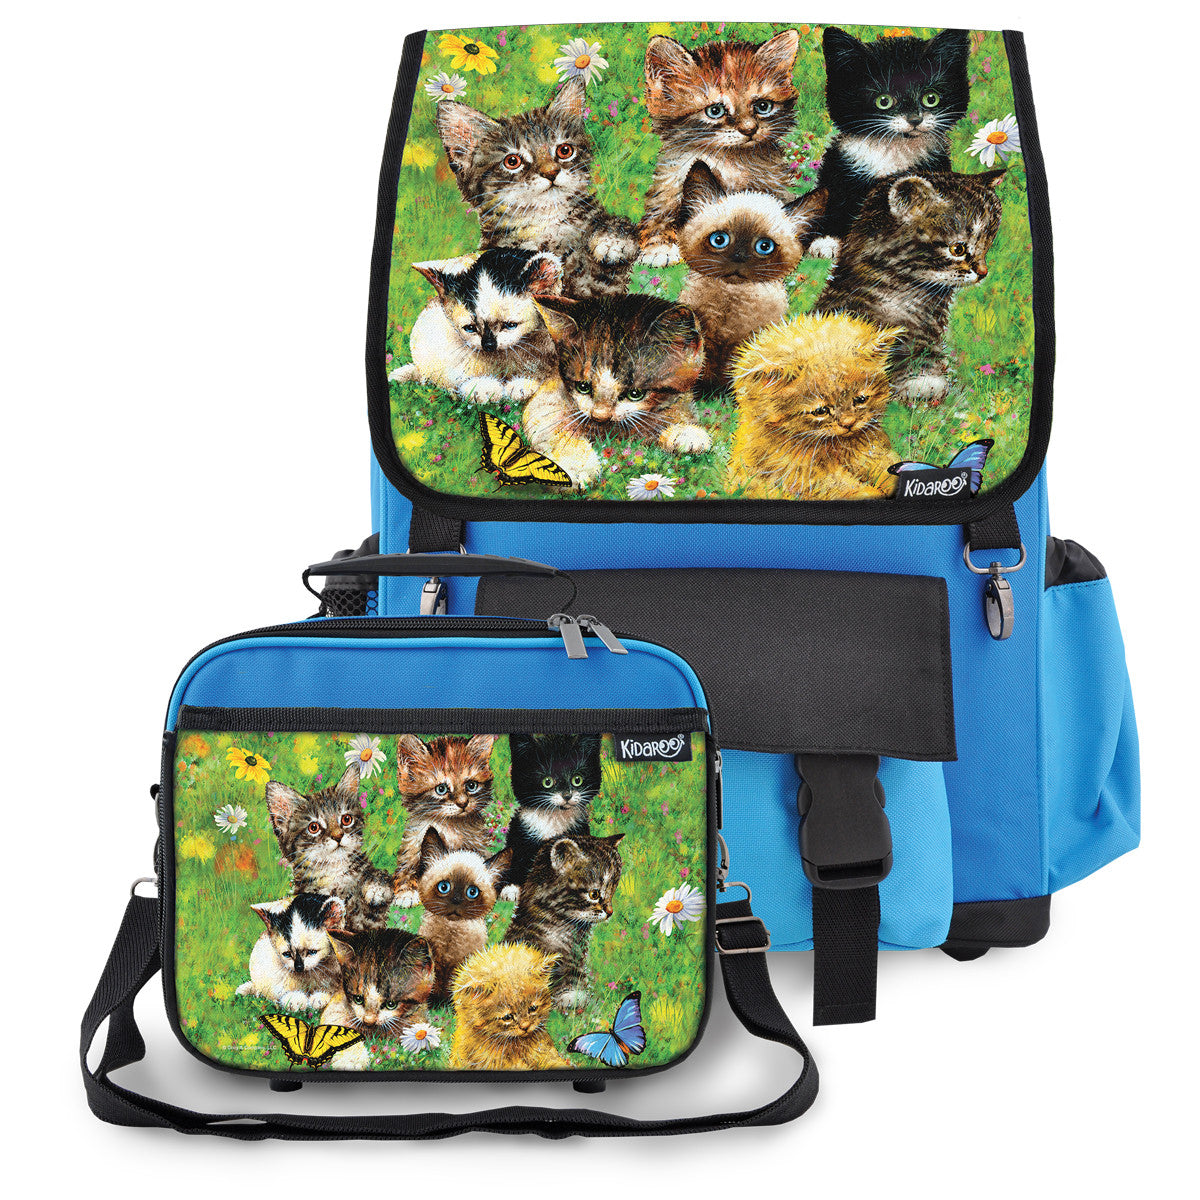 Kidaroo Blue Cute Little Kittens School Backpack & Lunchbox Set for Boys, Girls, Kids